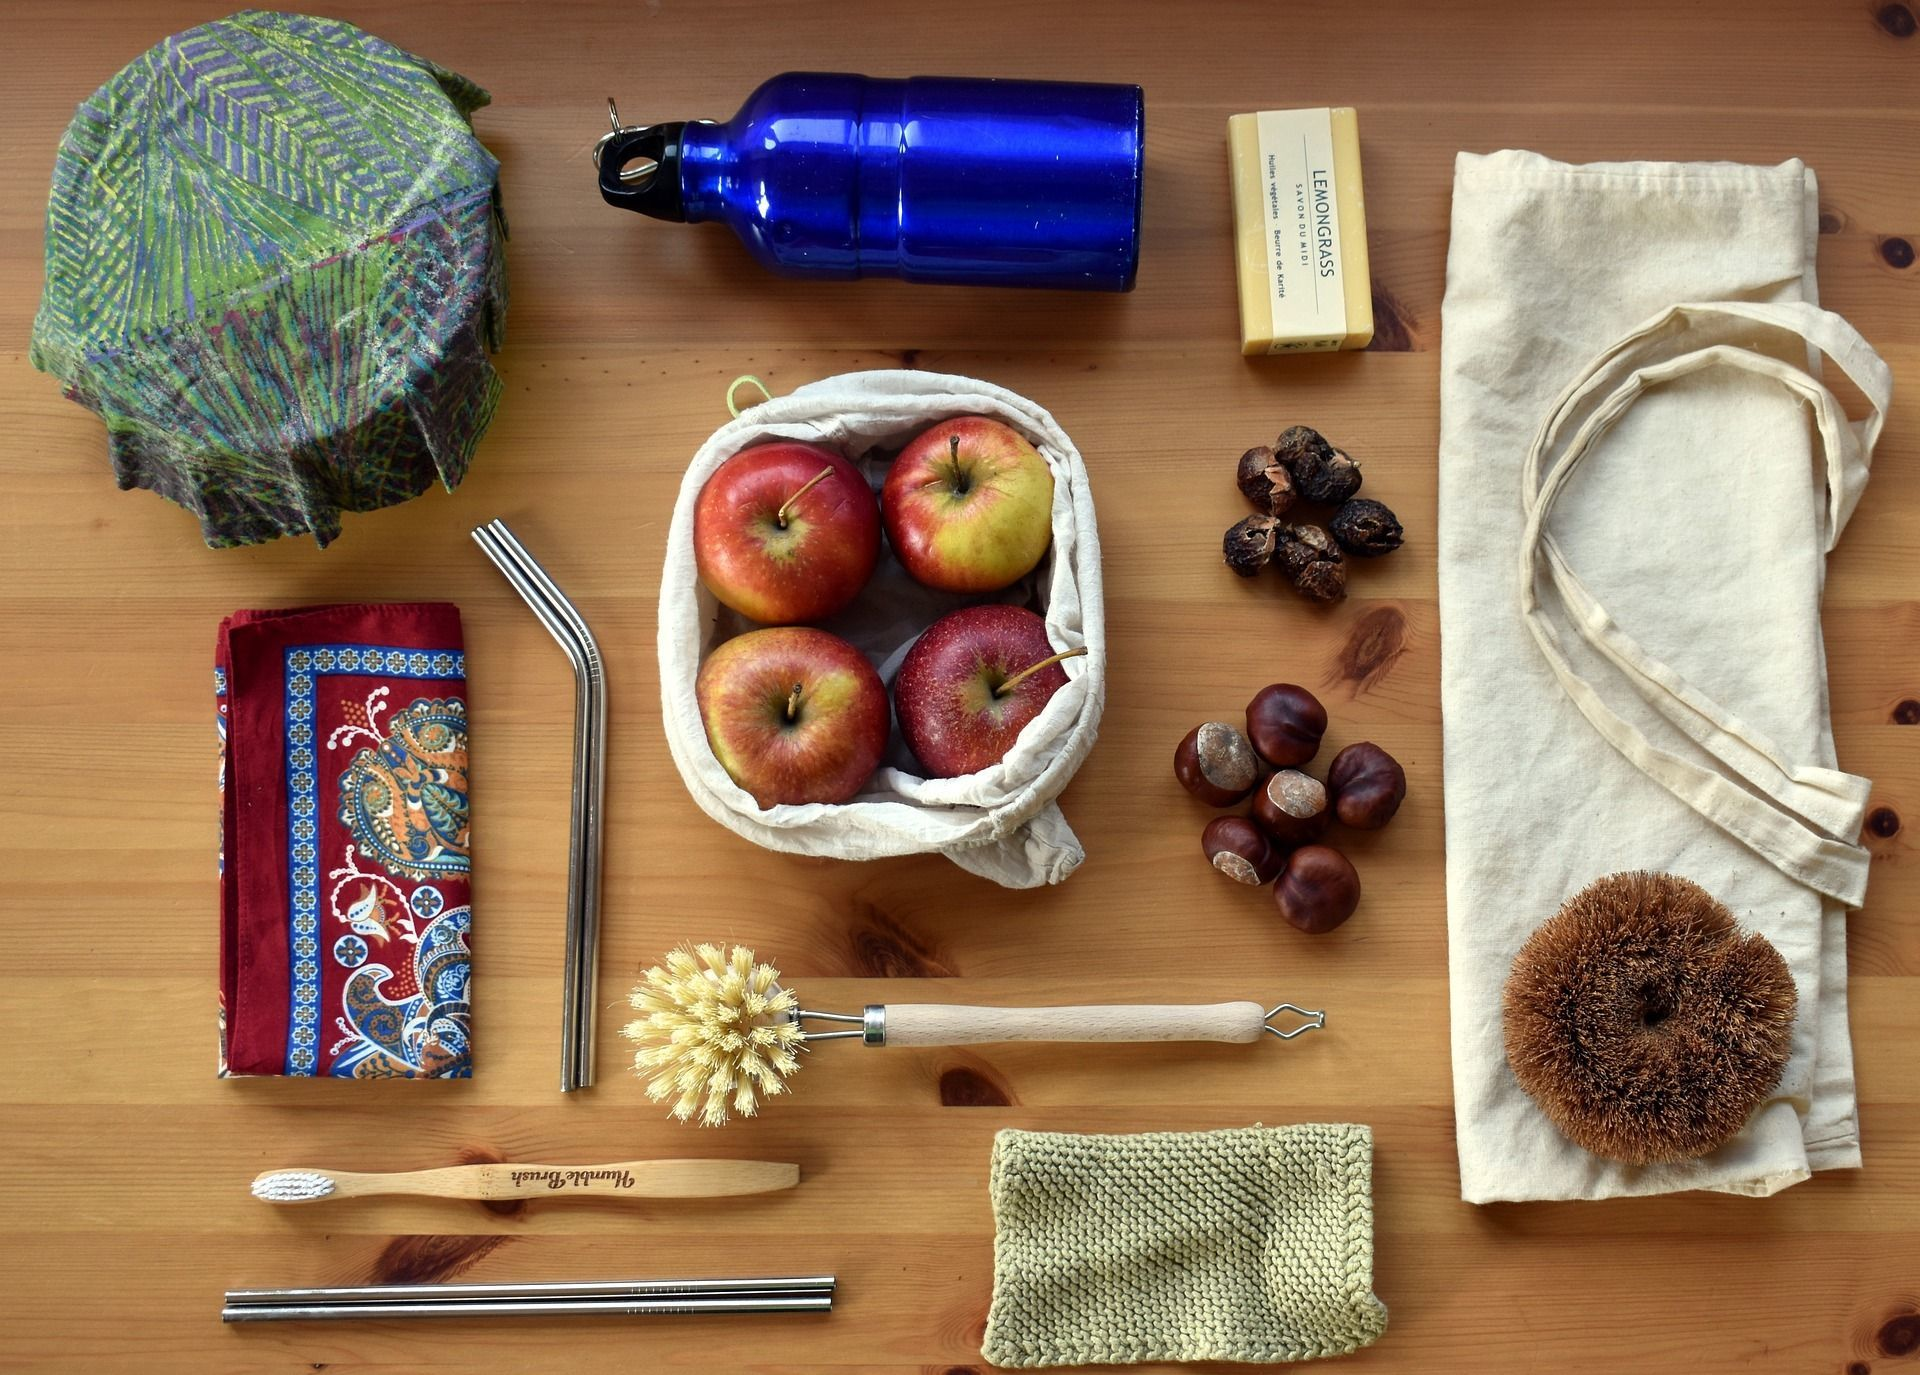 21 Ways to Ditch Plastic, Reduce Waste, and Lead a More Eco-Friendly Lifestyle in 2021, Part 2